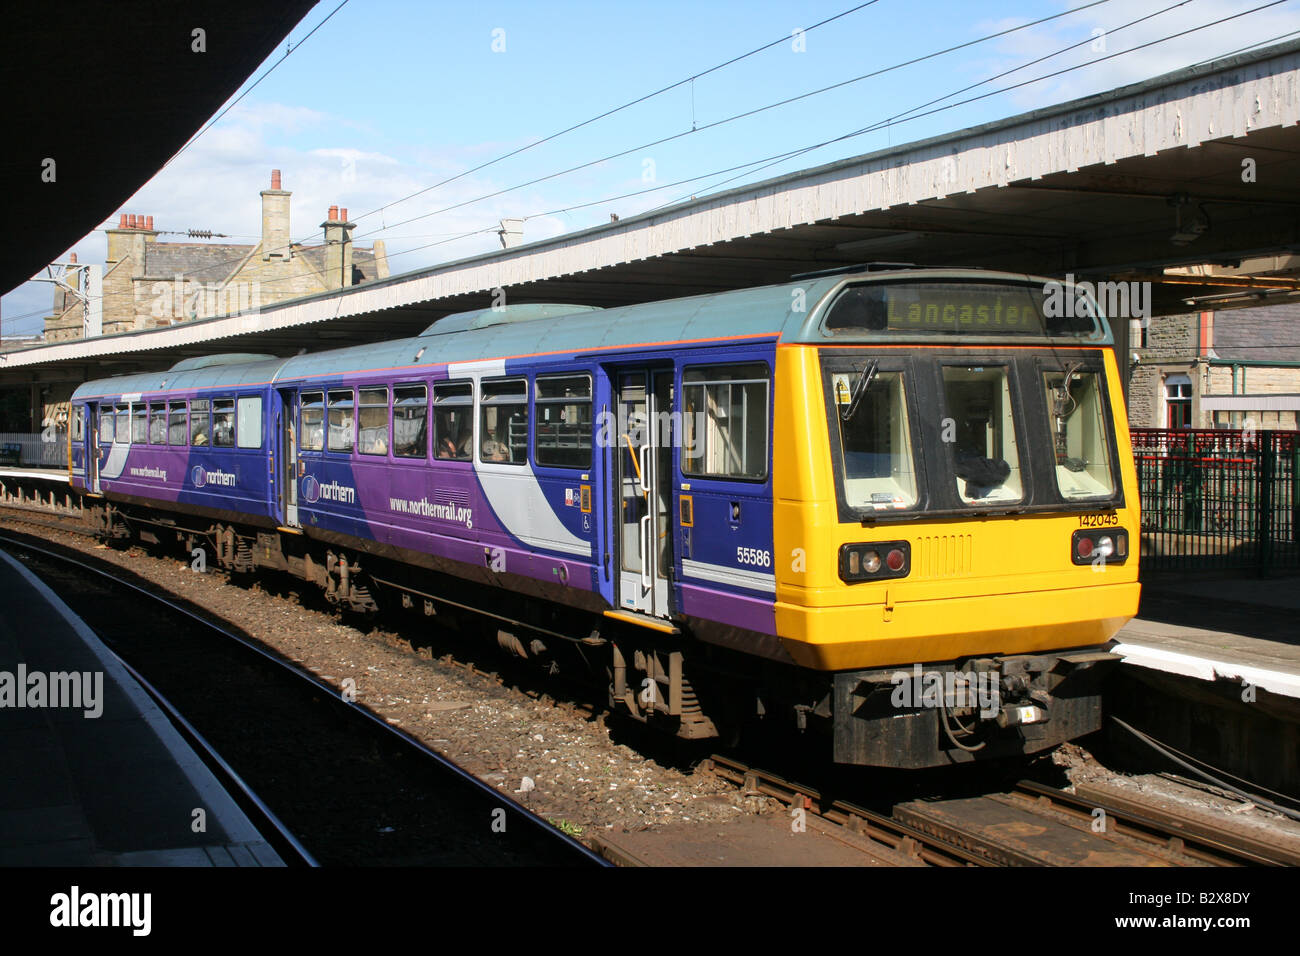 Class 142 diesel multiple unit at Carnforth. - Stock Image